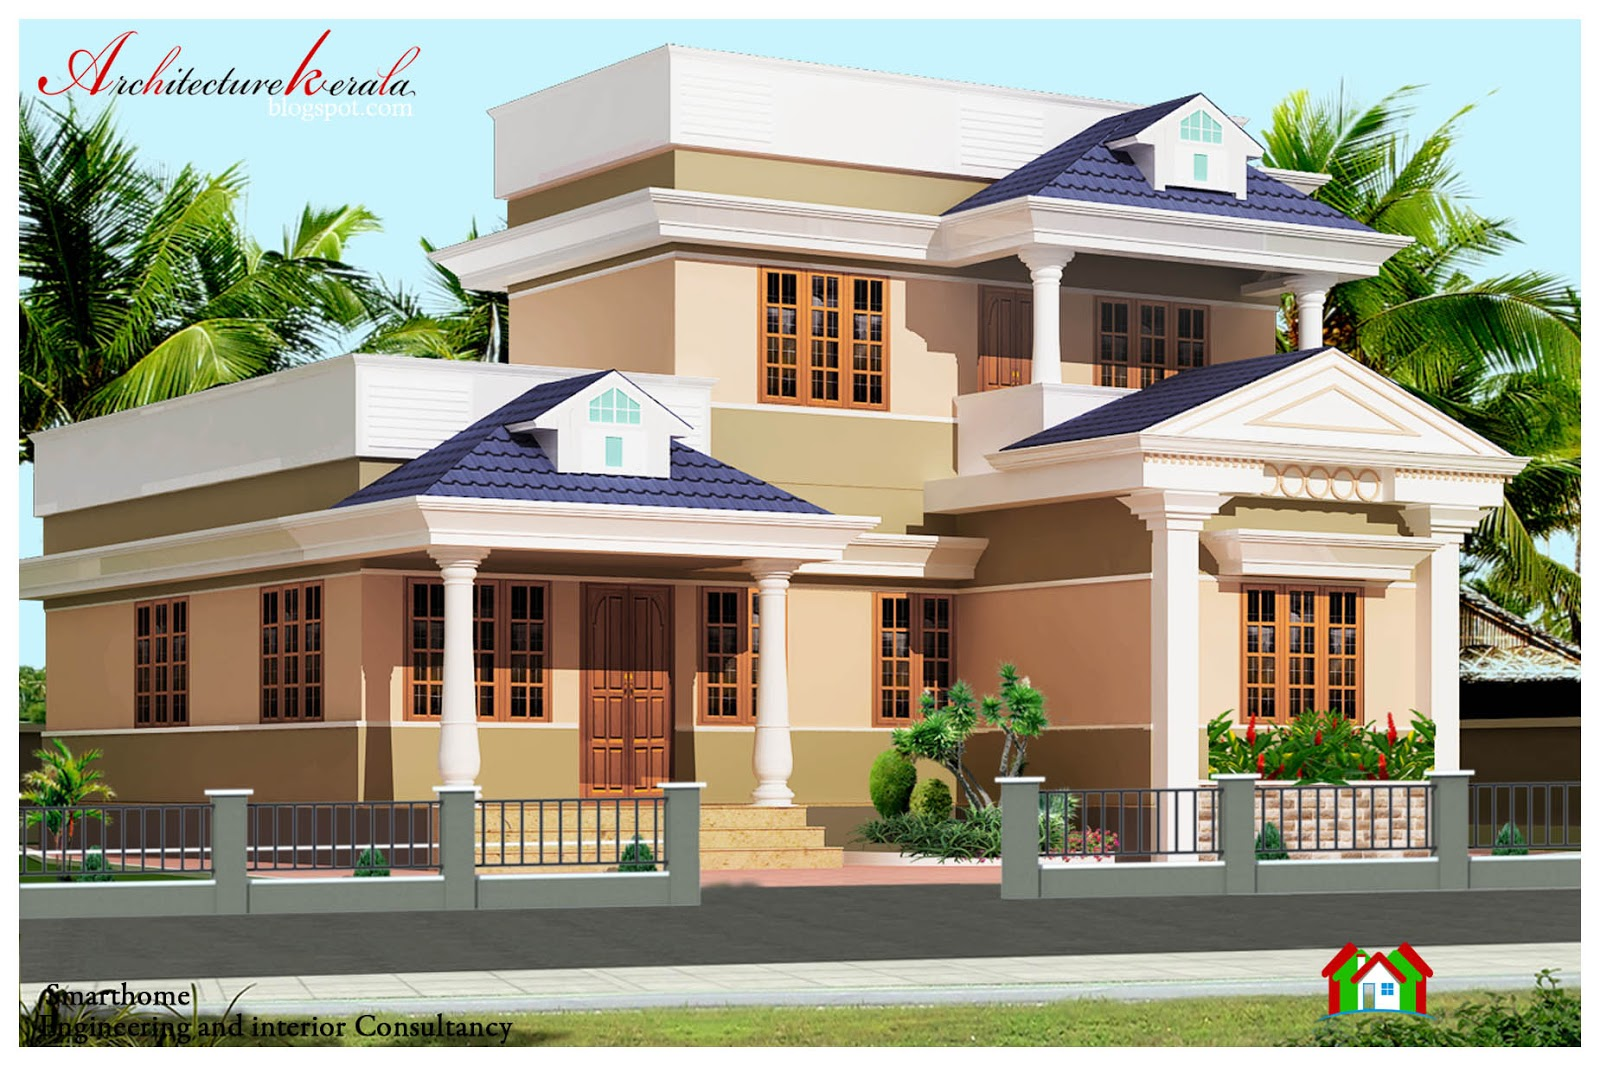 Architecture kerala 1000 sq ft kerala style house plan for Kerala homes plan